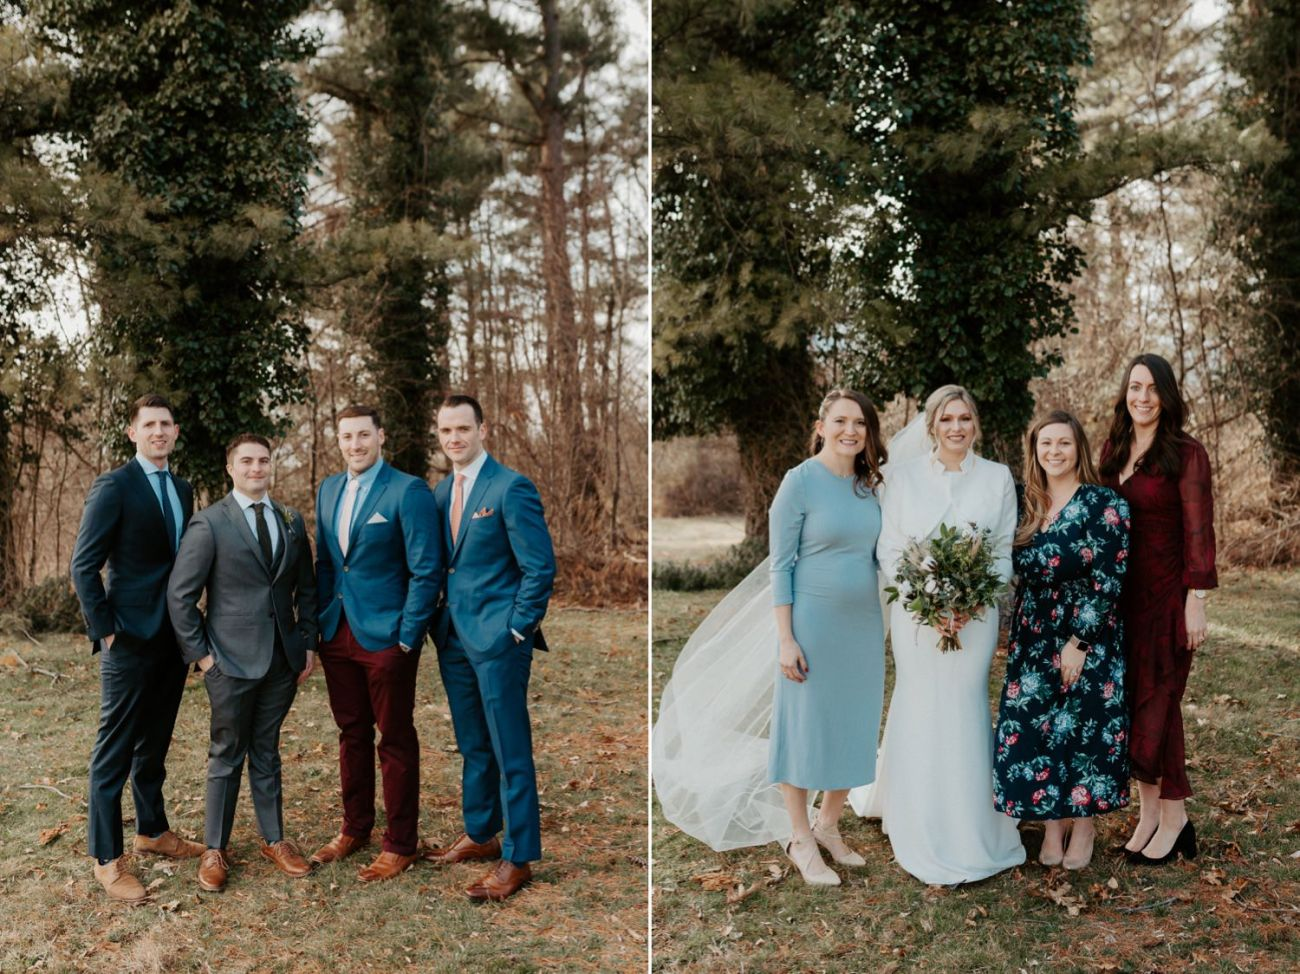 Princeton Battlefield Wedding Princeton University Elopement New Jersey Wedding Photographer Anais Possamai Photography 19